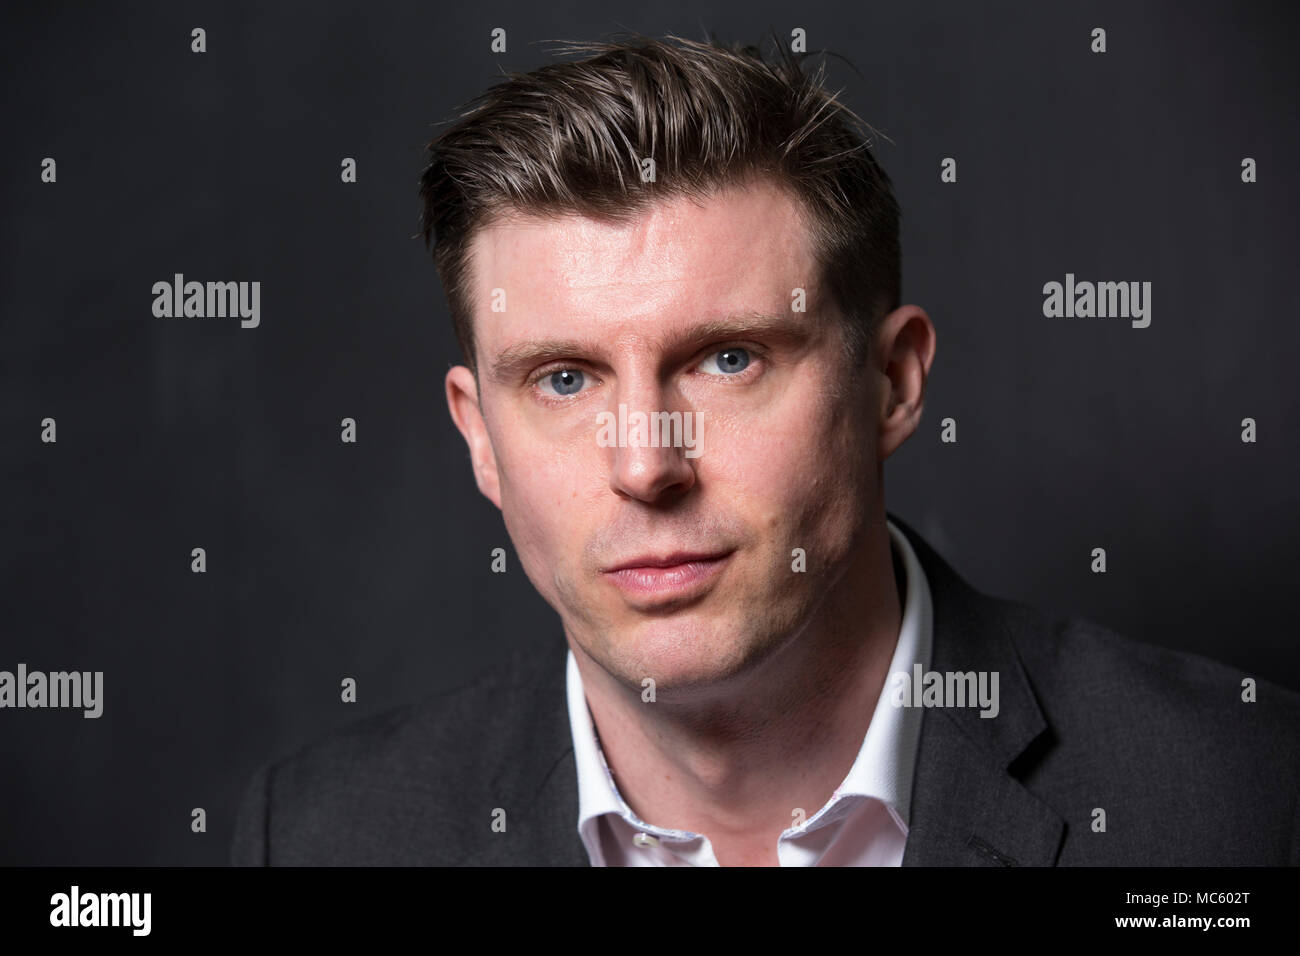 Matthew Reeve at Neurokinex. Matthew is the son of Christopher Reeve and Gae Exton, and has carried on his father's work with spinal cord injuries. - Stock Image